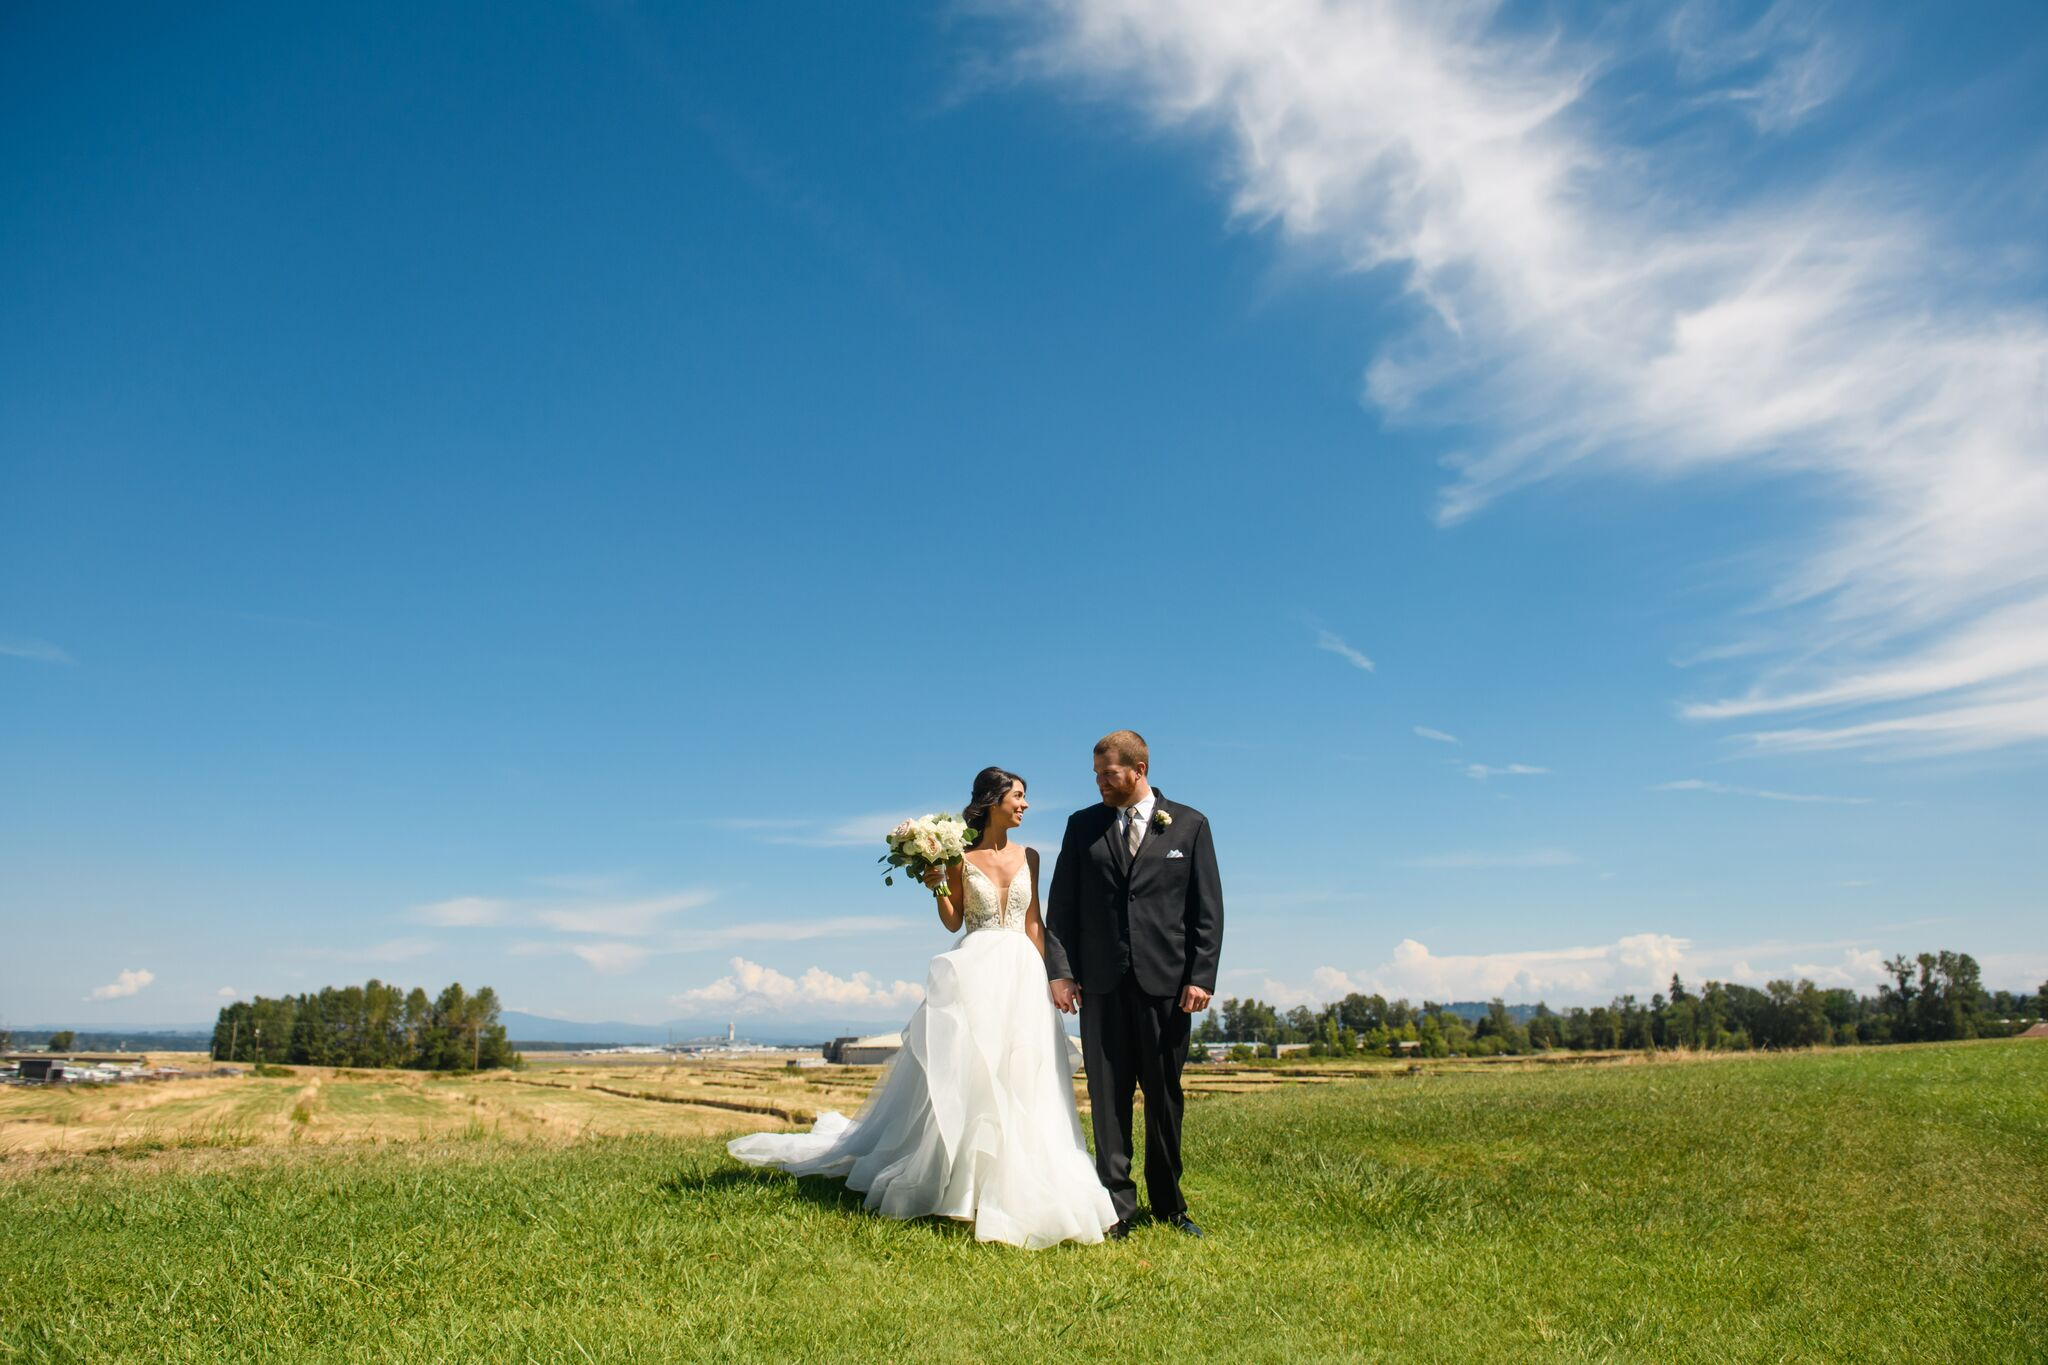 Bridalbliss.com | Portland Wedding | Oregon Event Planning and Design | Honeysuckle